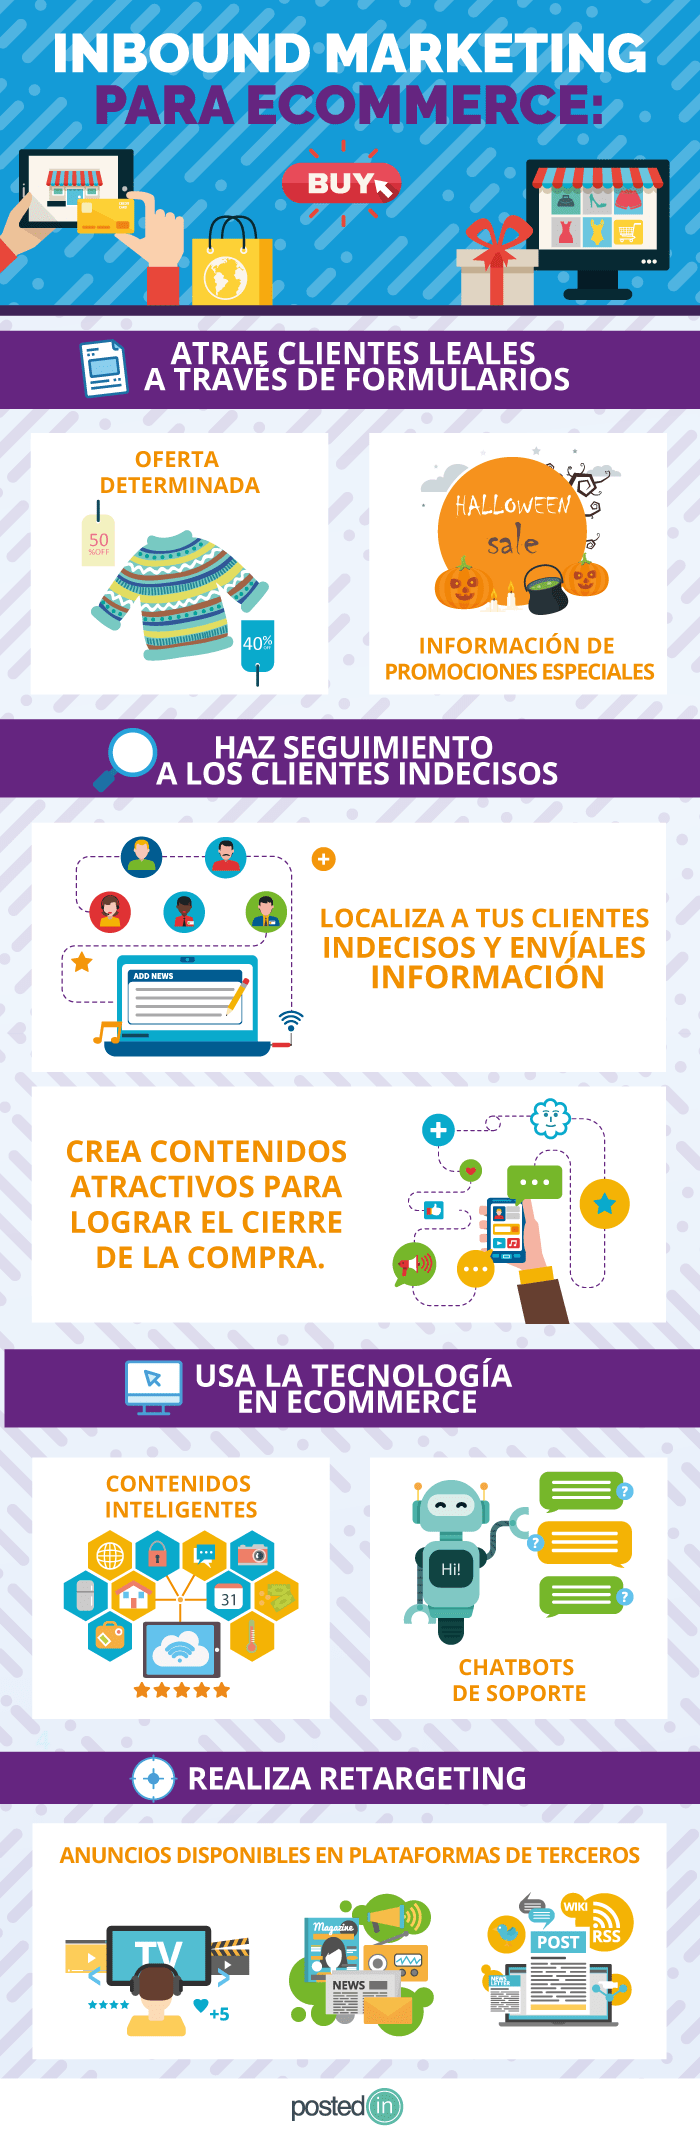 Inbound marketing para Comercio Electrónico